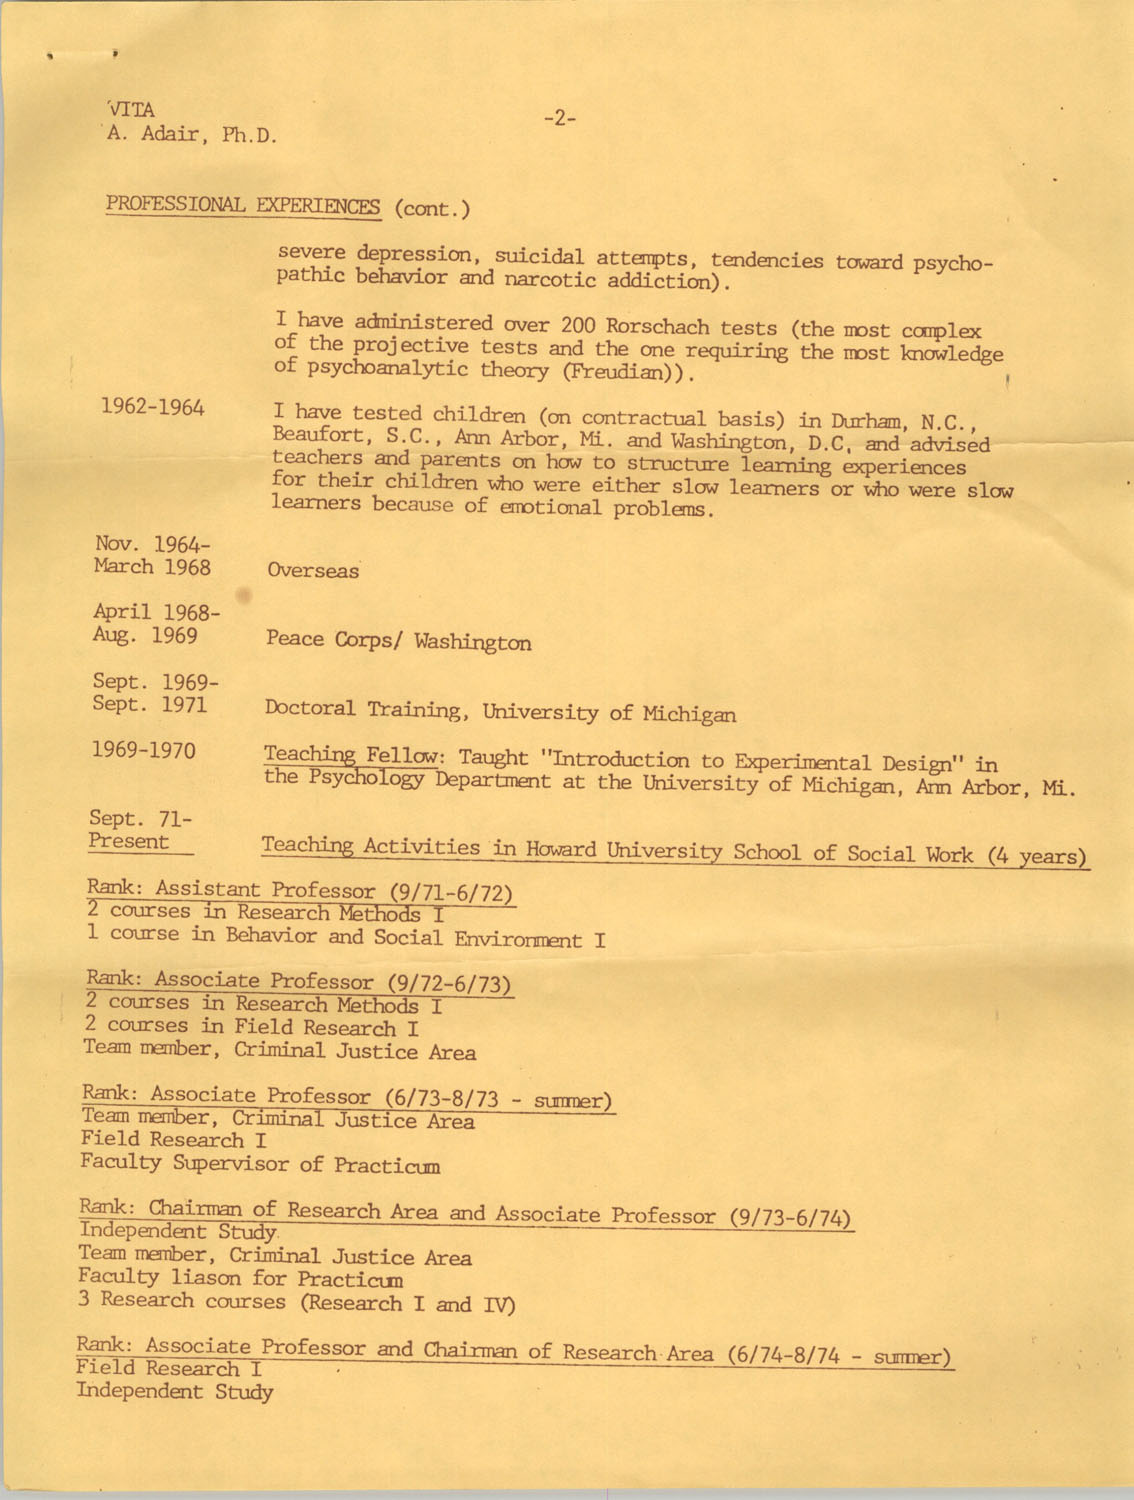 Alvis V. Adair Resume, Page 2